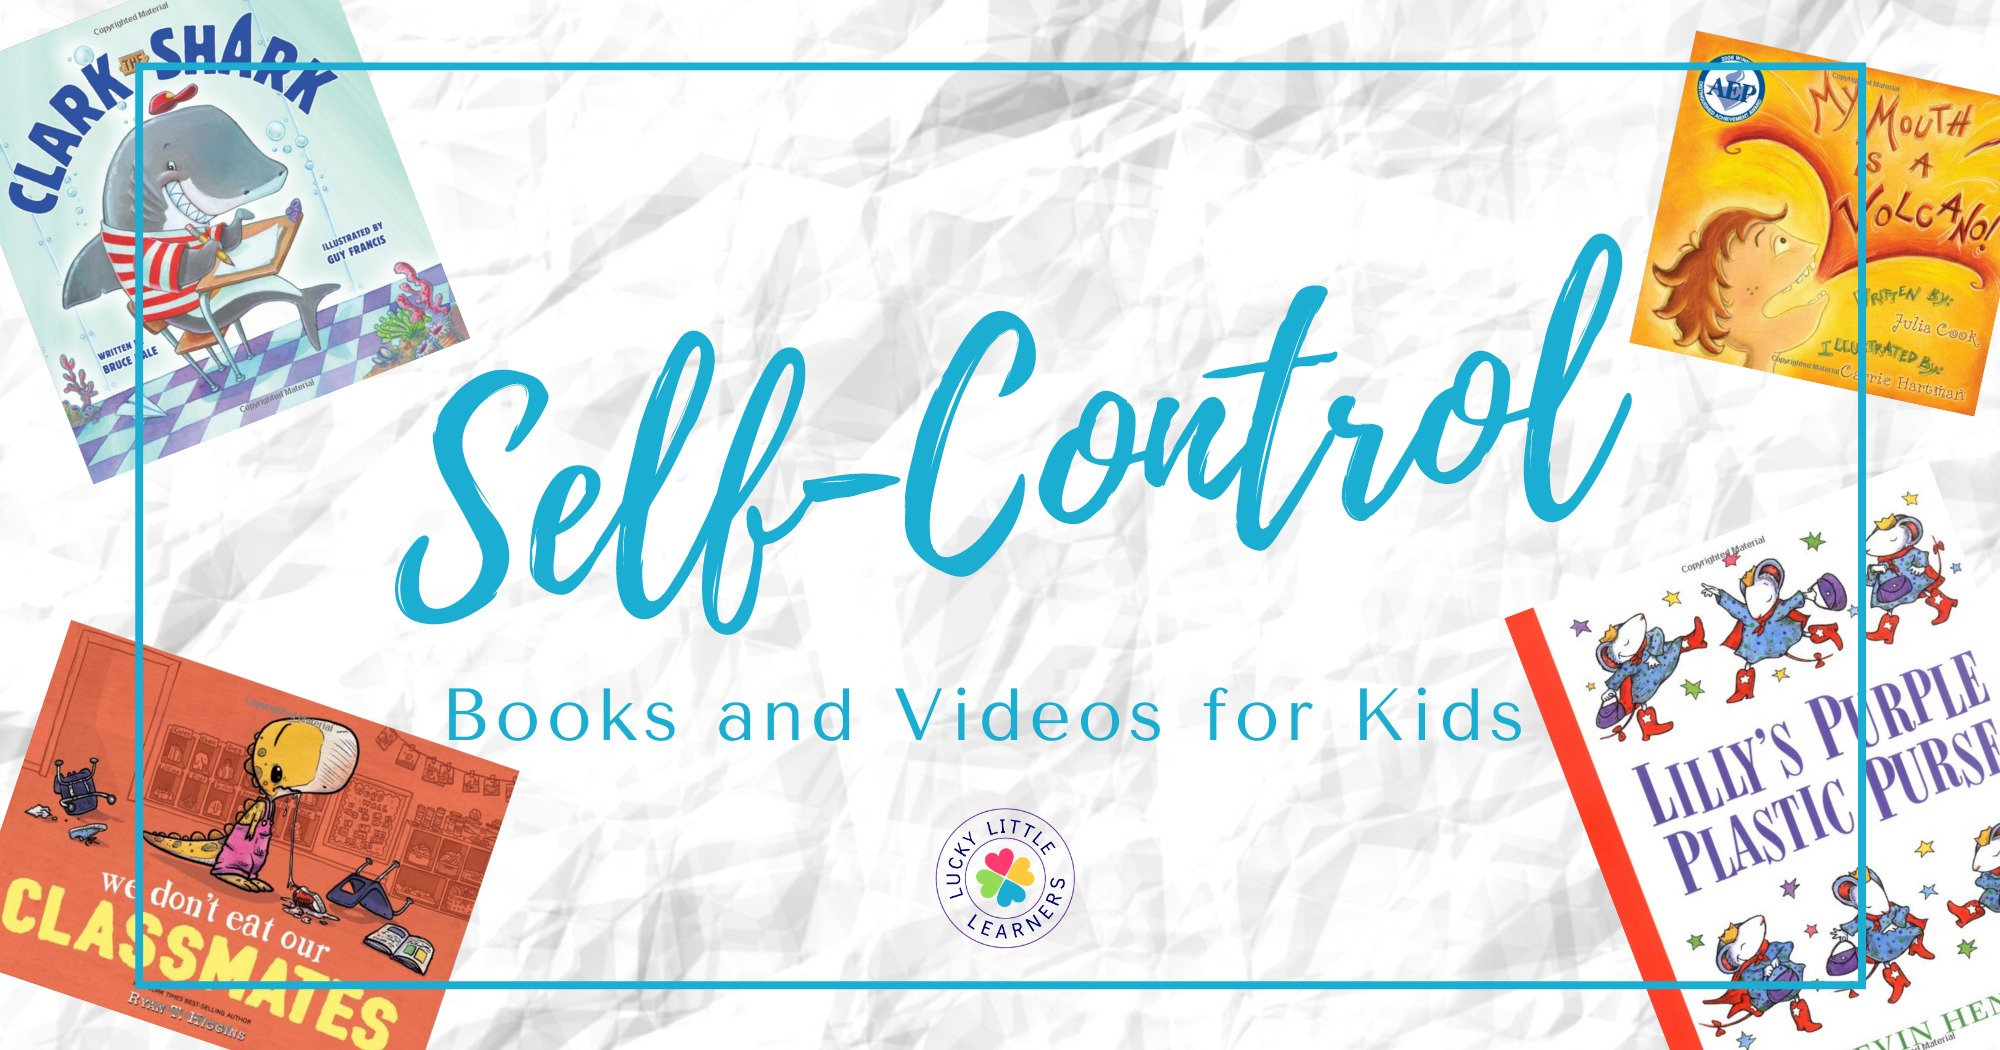 Must-Have Children's Books and Videos About Self-Control